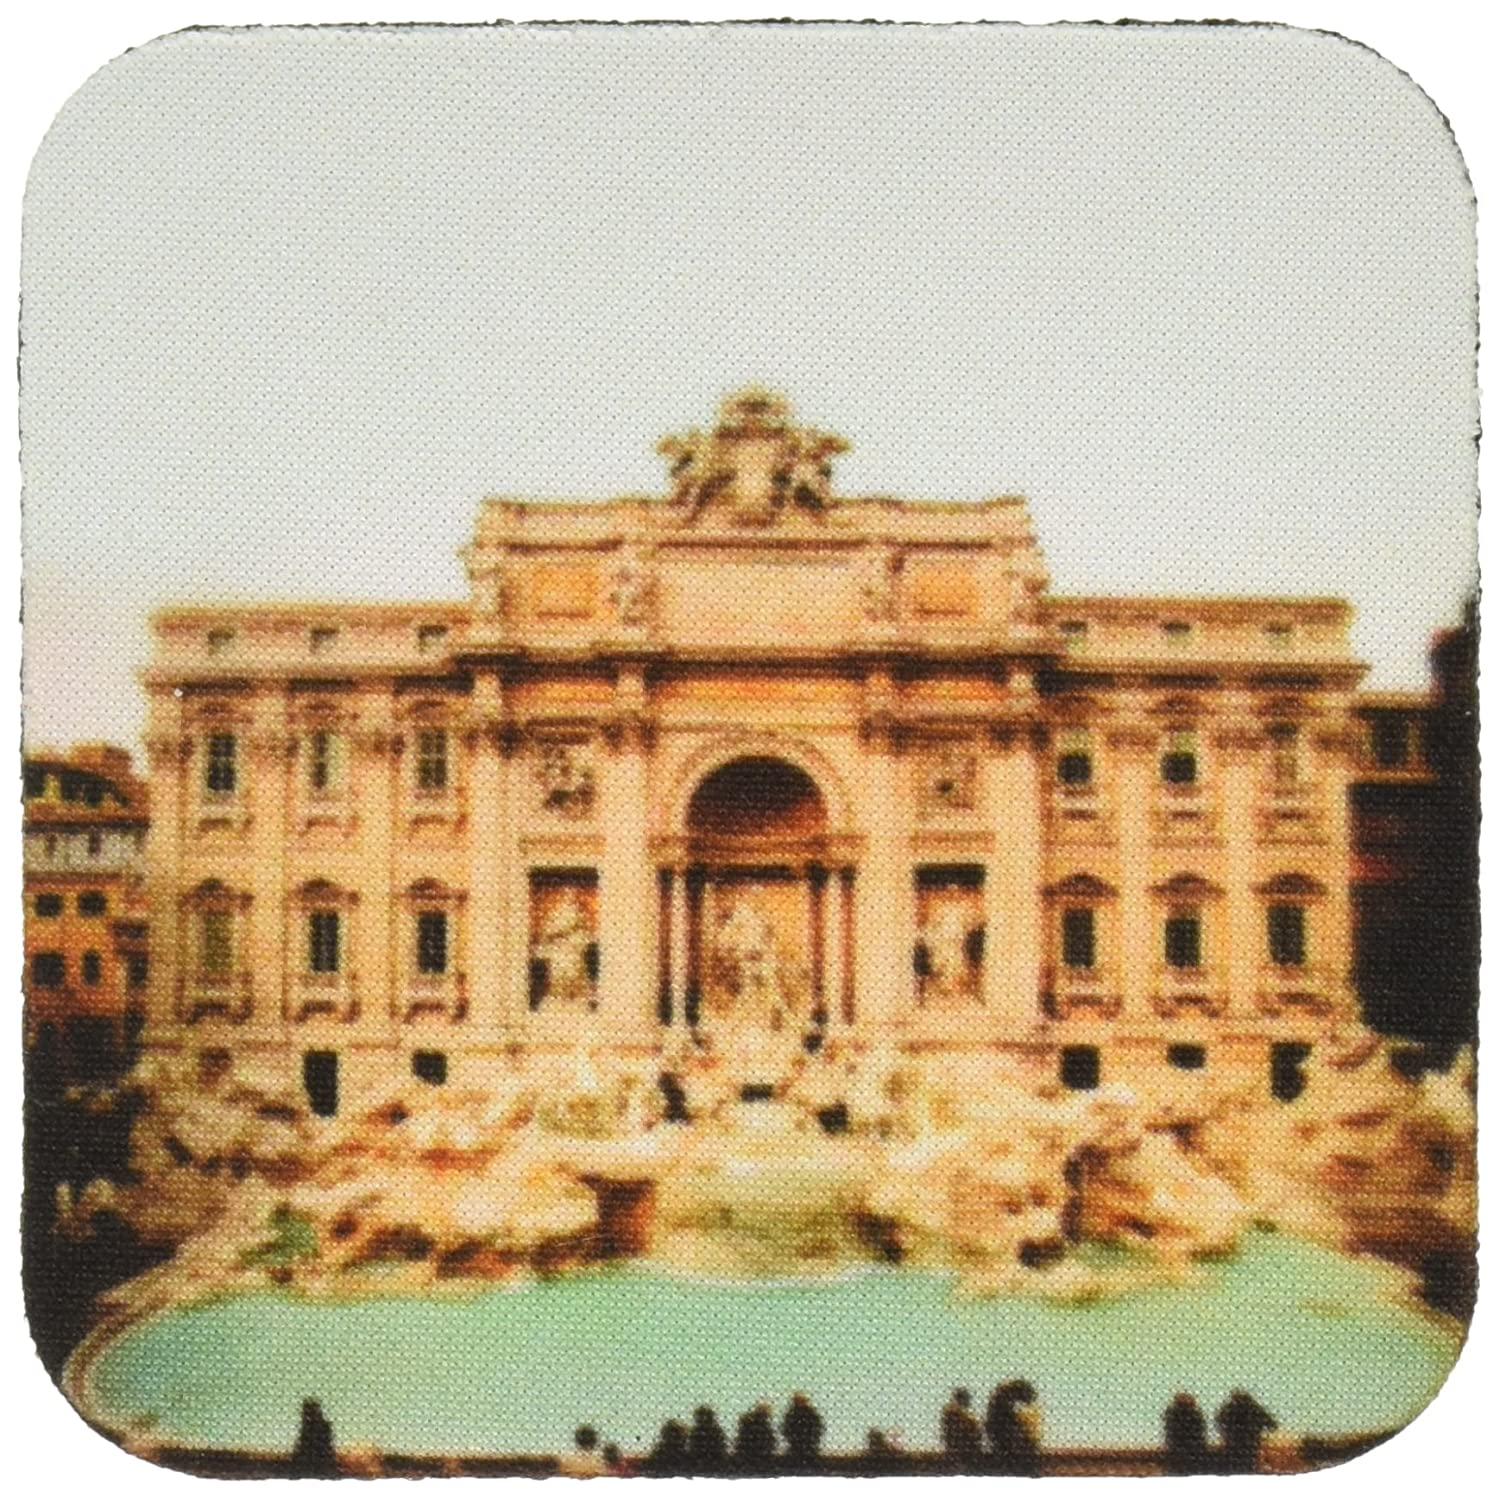 Set of 8 3dRose cst/_1137/_2 Trevi Fountain Italy Soft Coasters